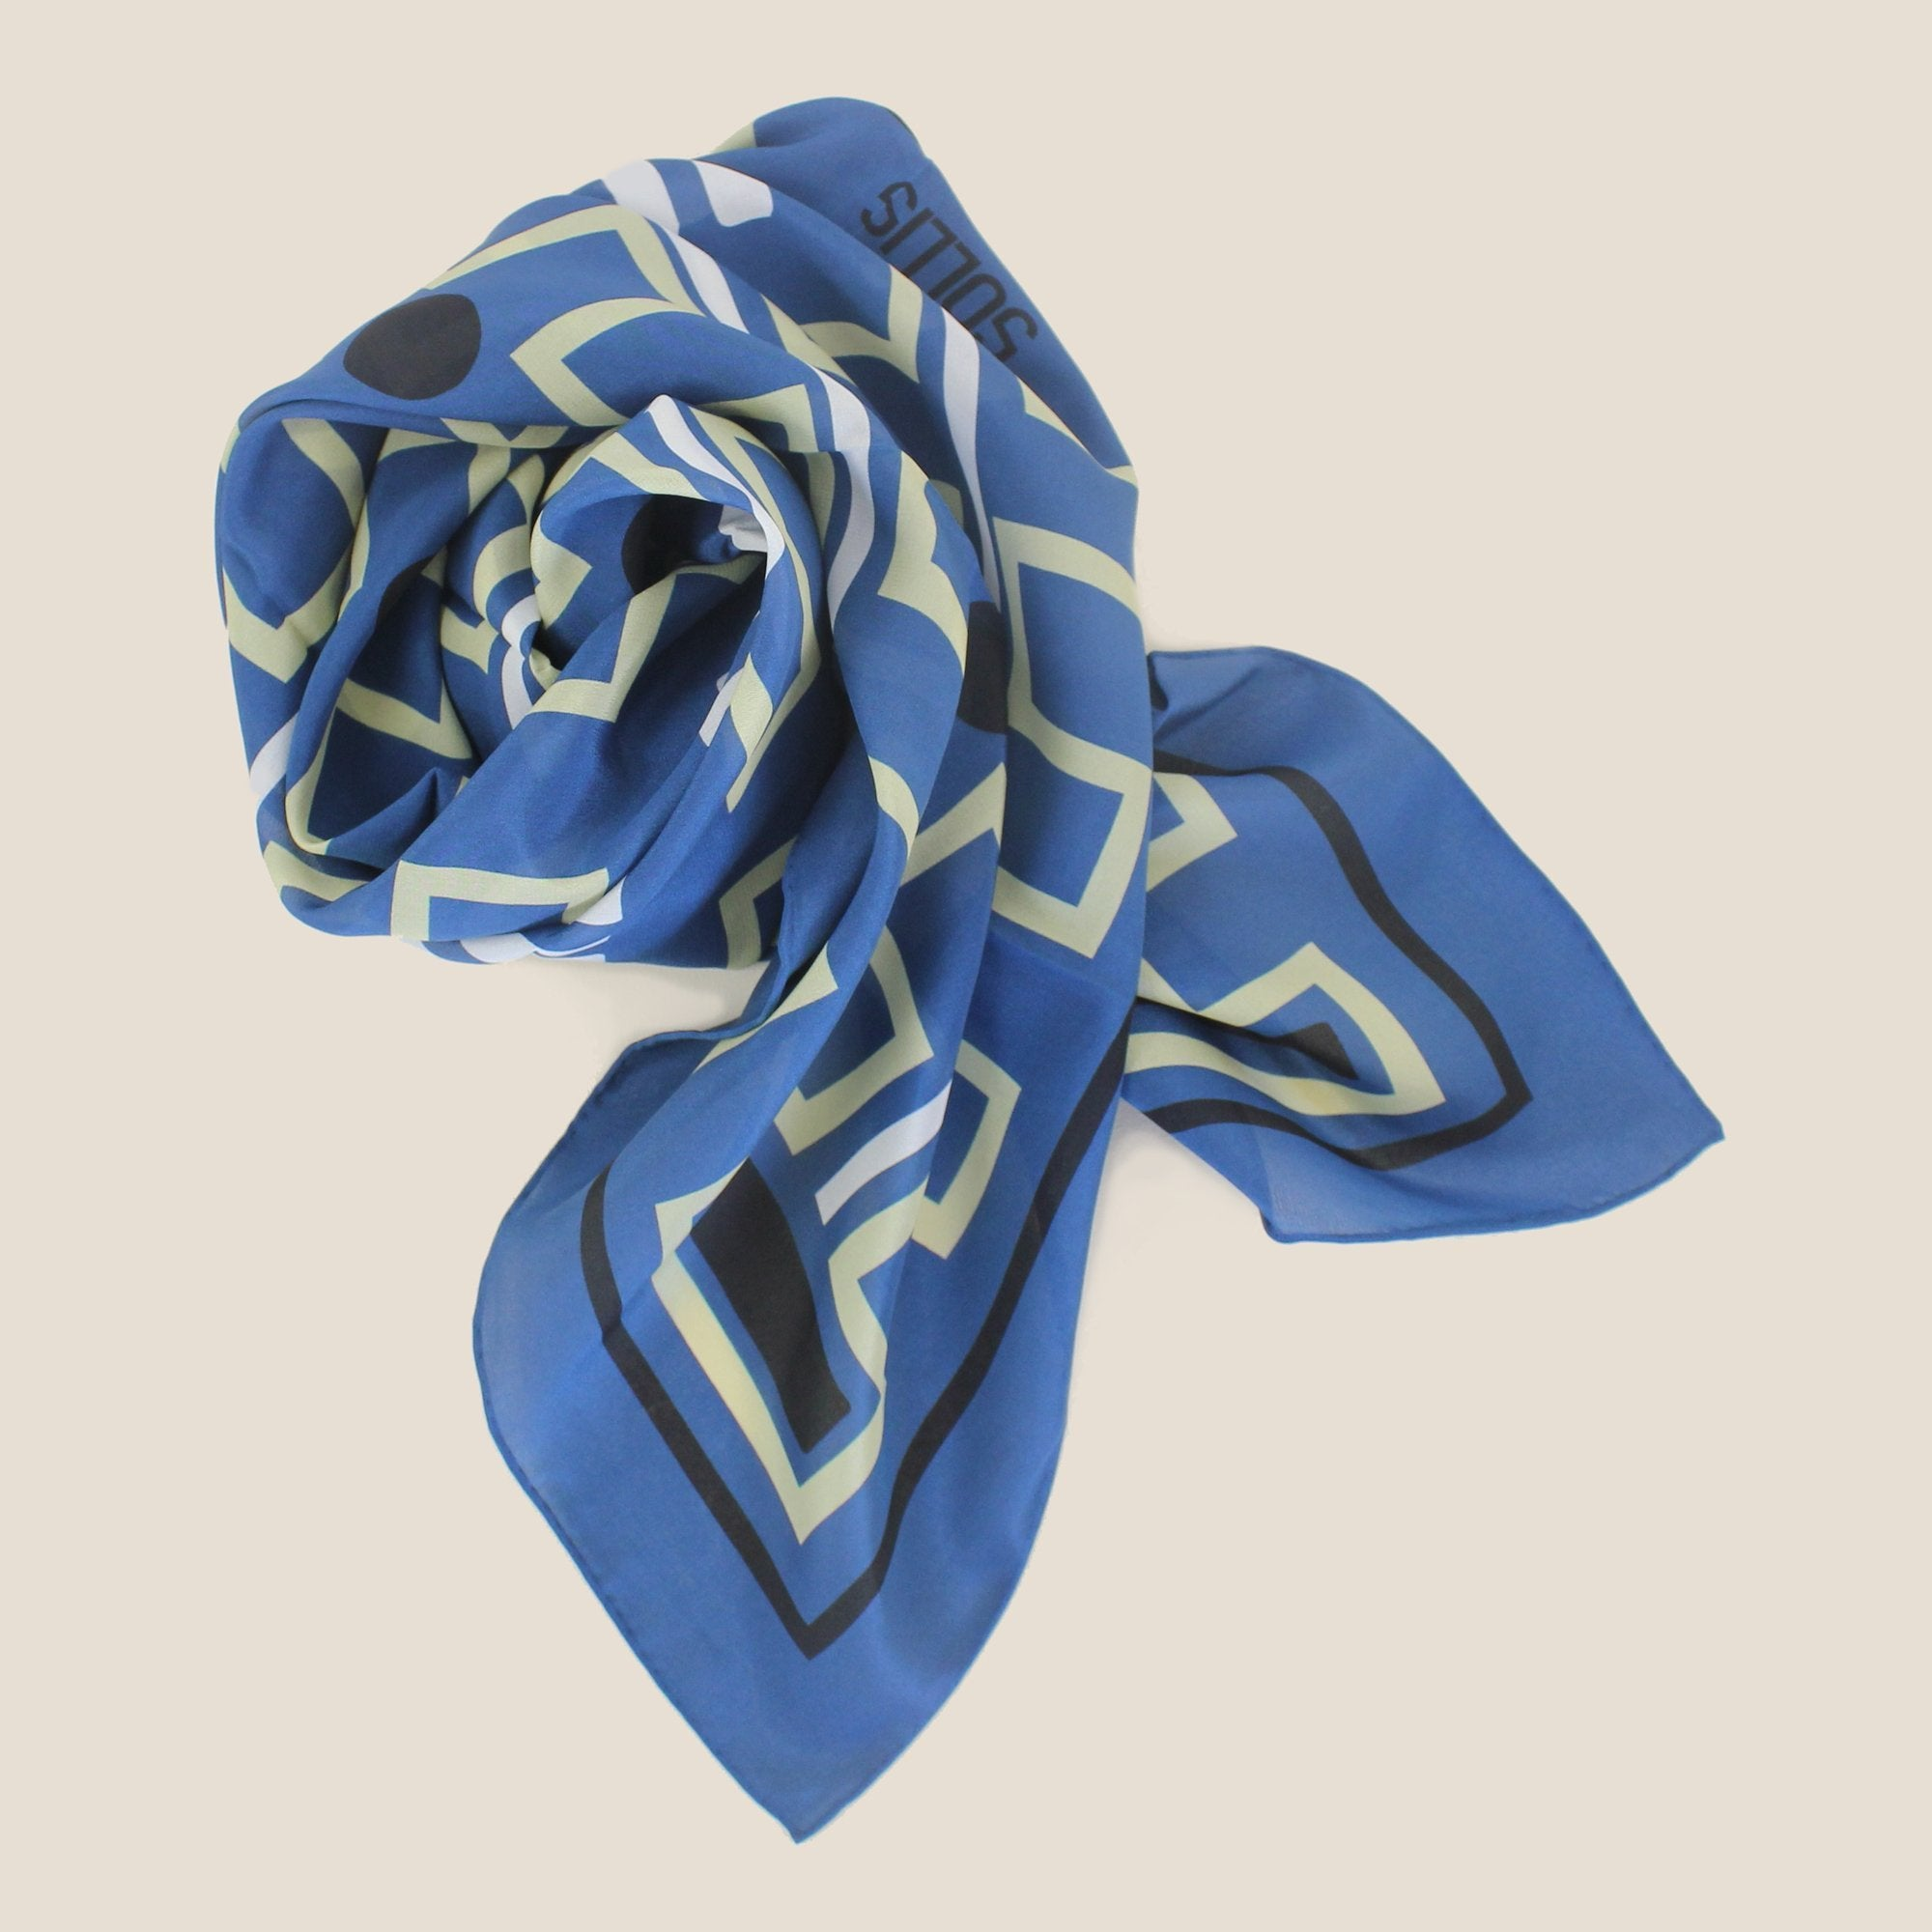 SILK SCARF - 'ZIG' design - 40% OFF